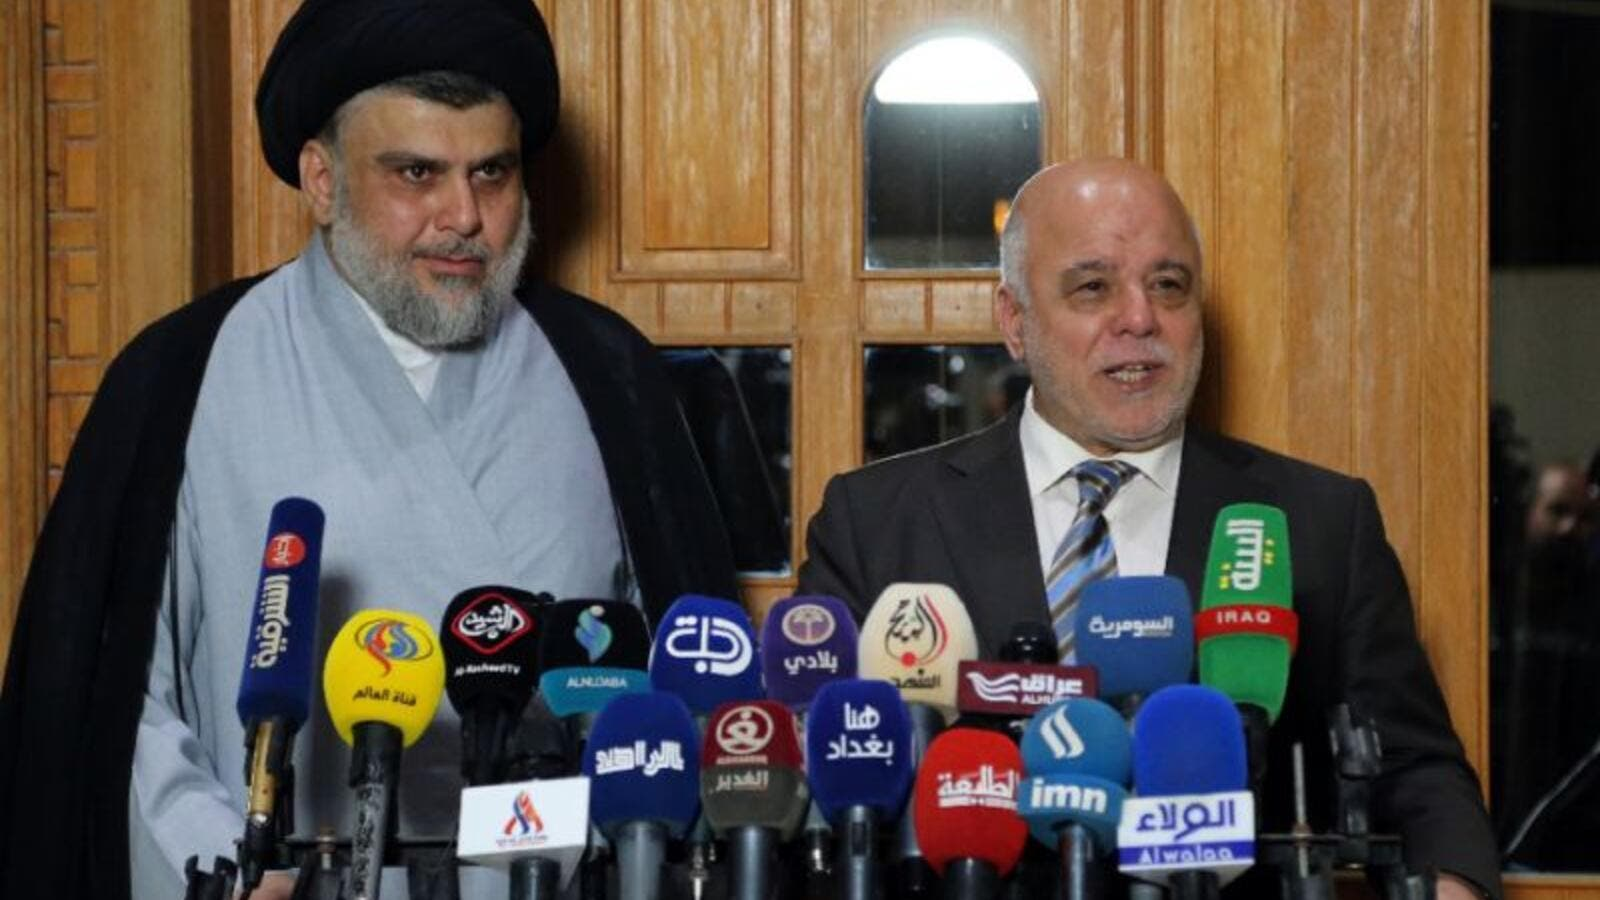 Iraqi Prime Minister Haider al-Abadi (R) and Shiite cleric leader Moqtada al-Sadr have reached an accord with 14 other Iraqi political grouping to form the biggest bloc in parliament. (AFP/ Haidar HAMDANI)